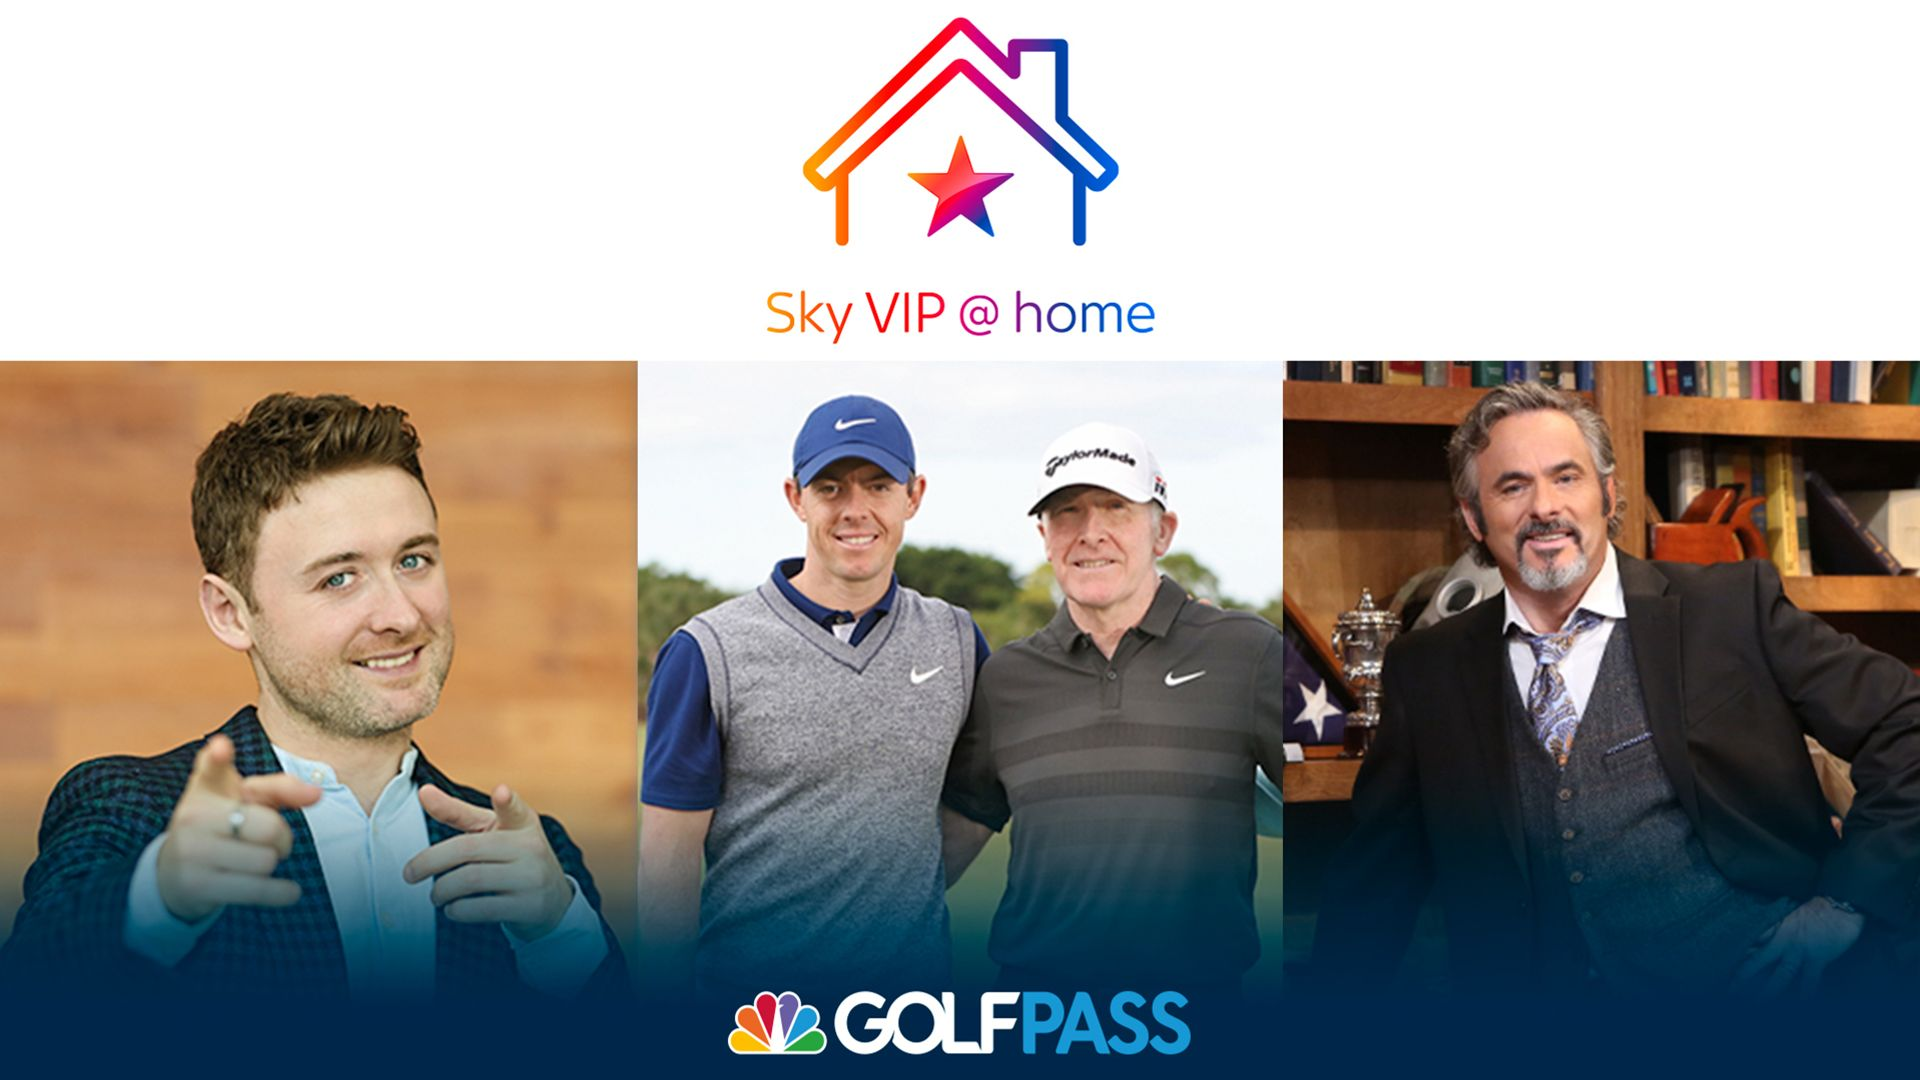 GOLFPASS Video: Free pass for Sky VIPs